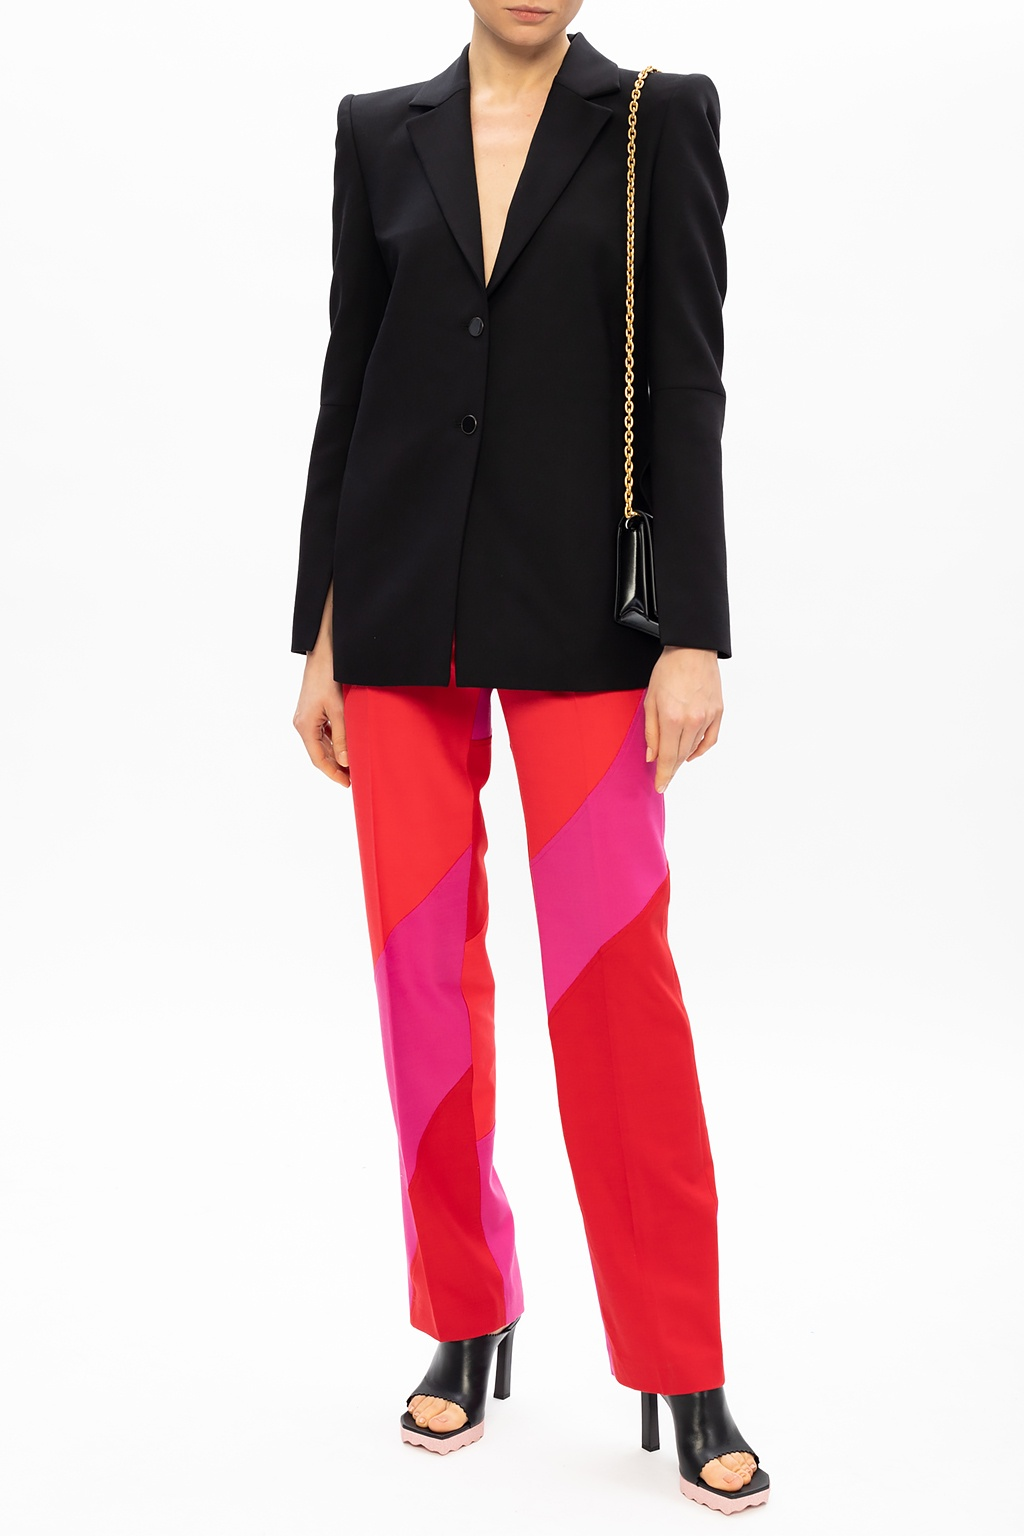 Off-White Blazer with cut-outs